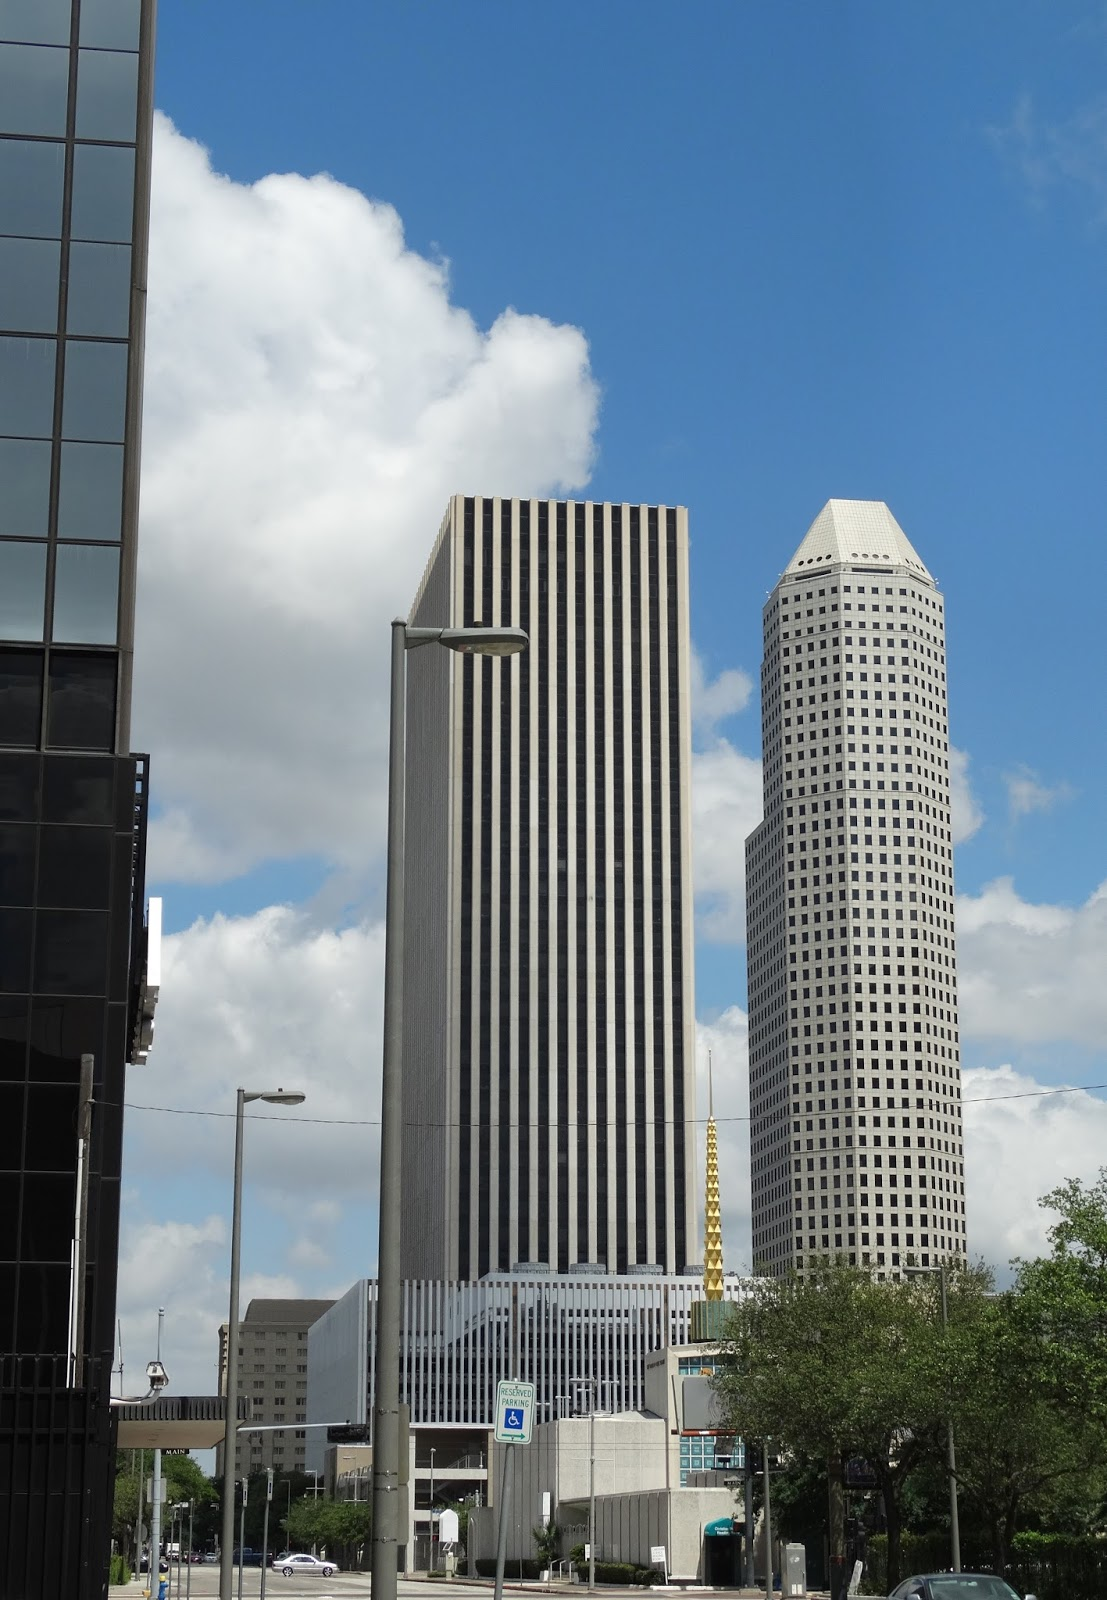 601 jefferson street houston tx 77002 - From Kbr To Jefferson Towers At Cullen Center 1600 Smith Tower On The Right Golden Spike Of The Church Christ Scientist Which Also Faces Re Branding